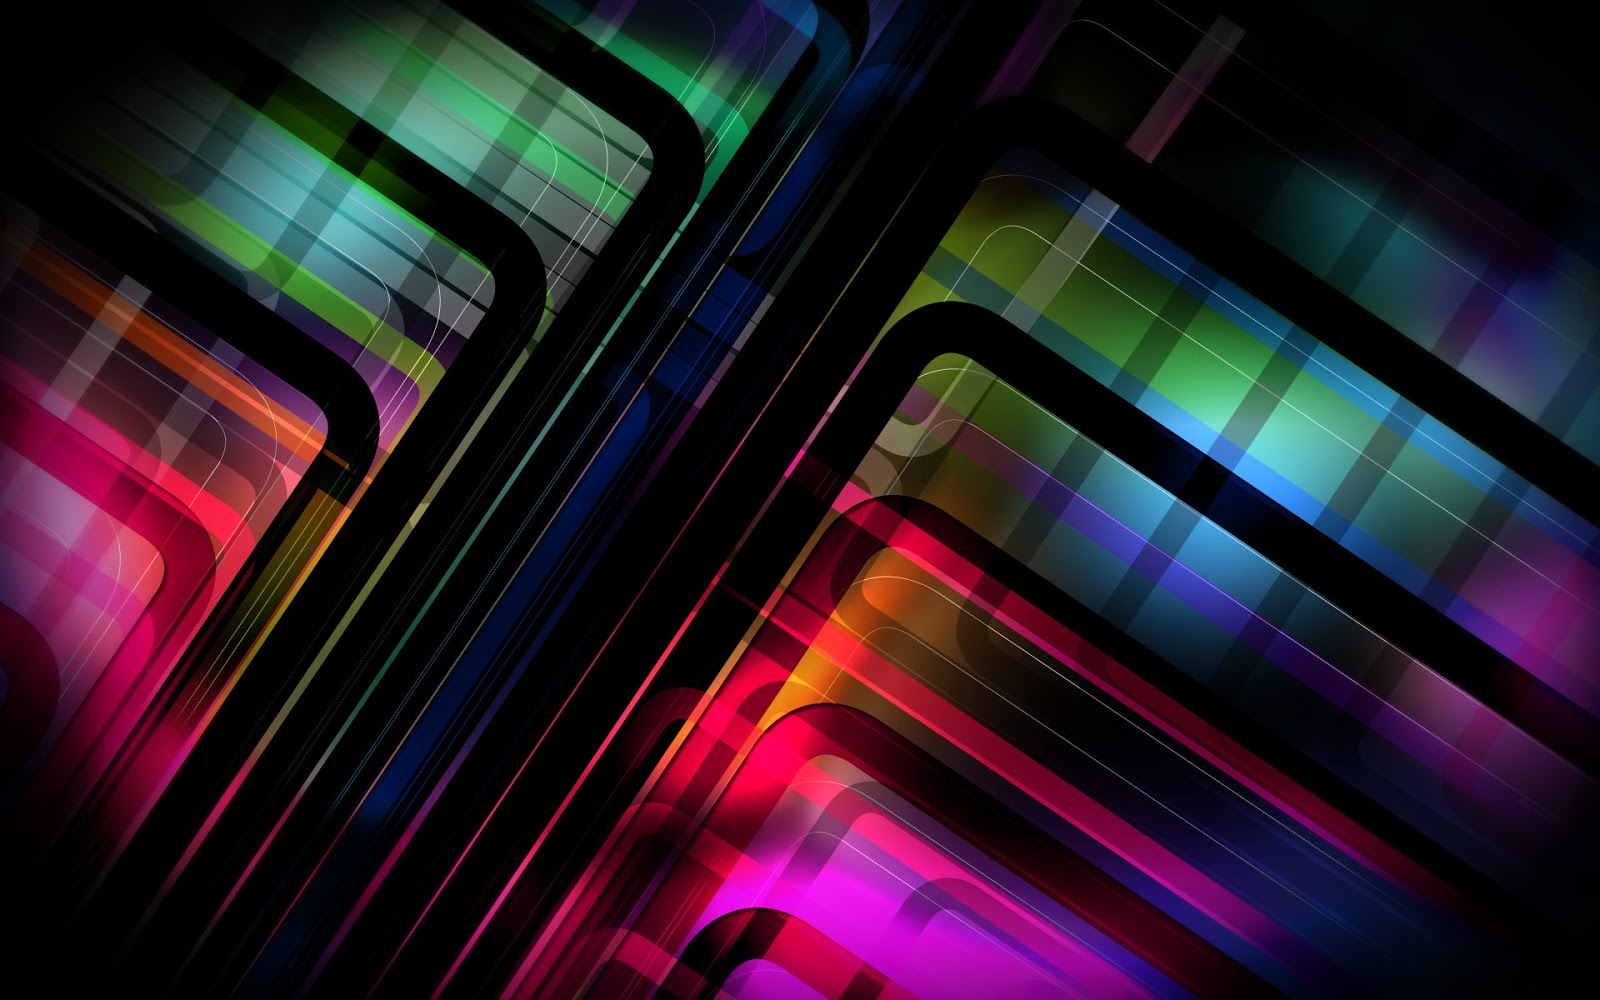 Abstract Studio Backgrounds,3d Abstract High Resolution Hd